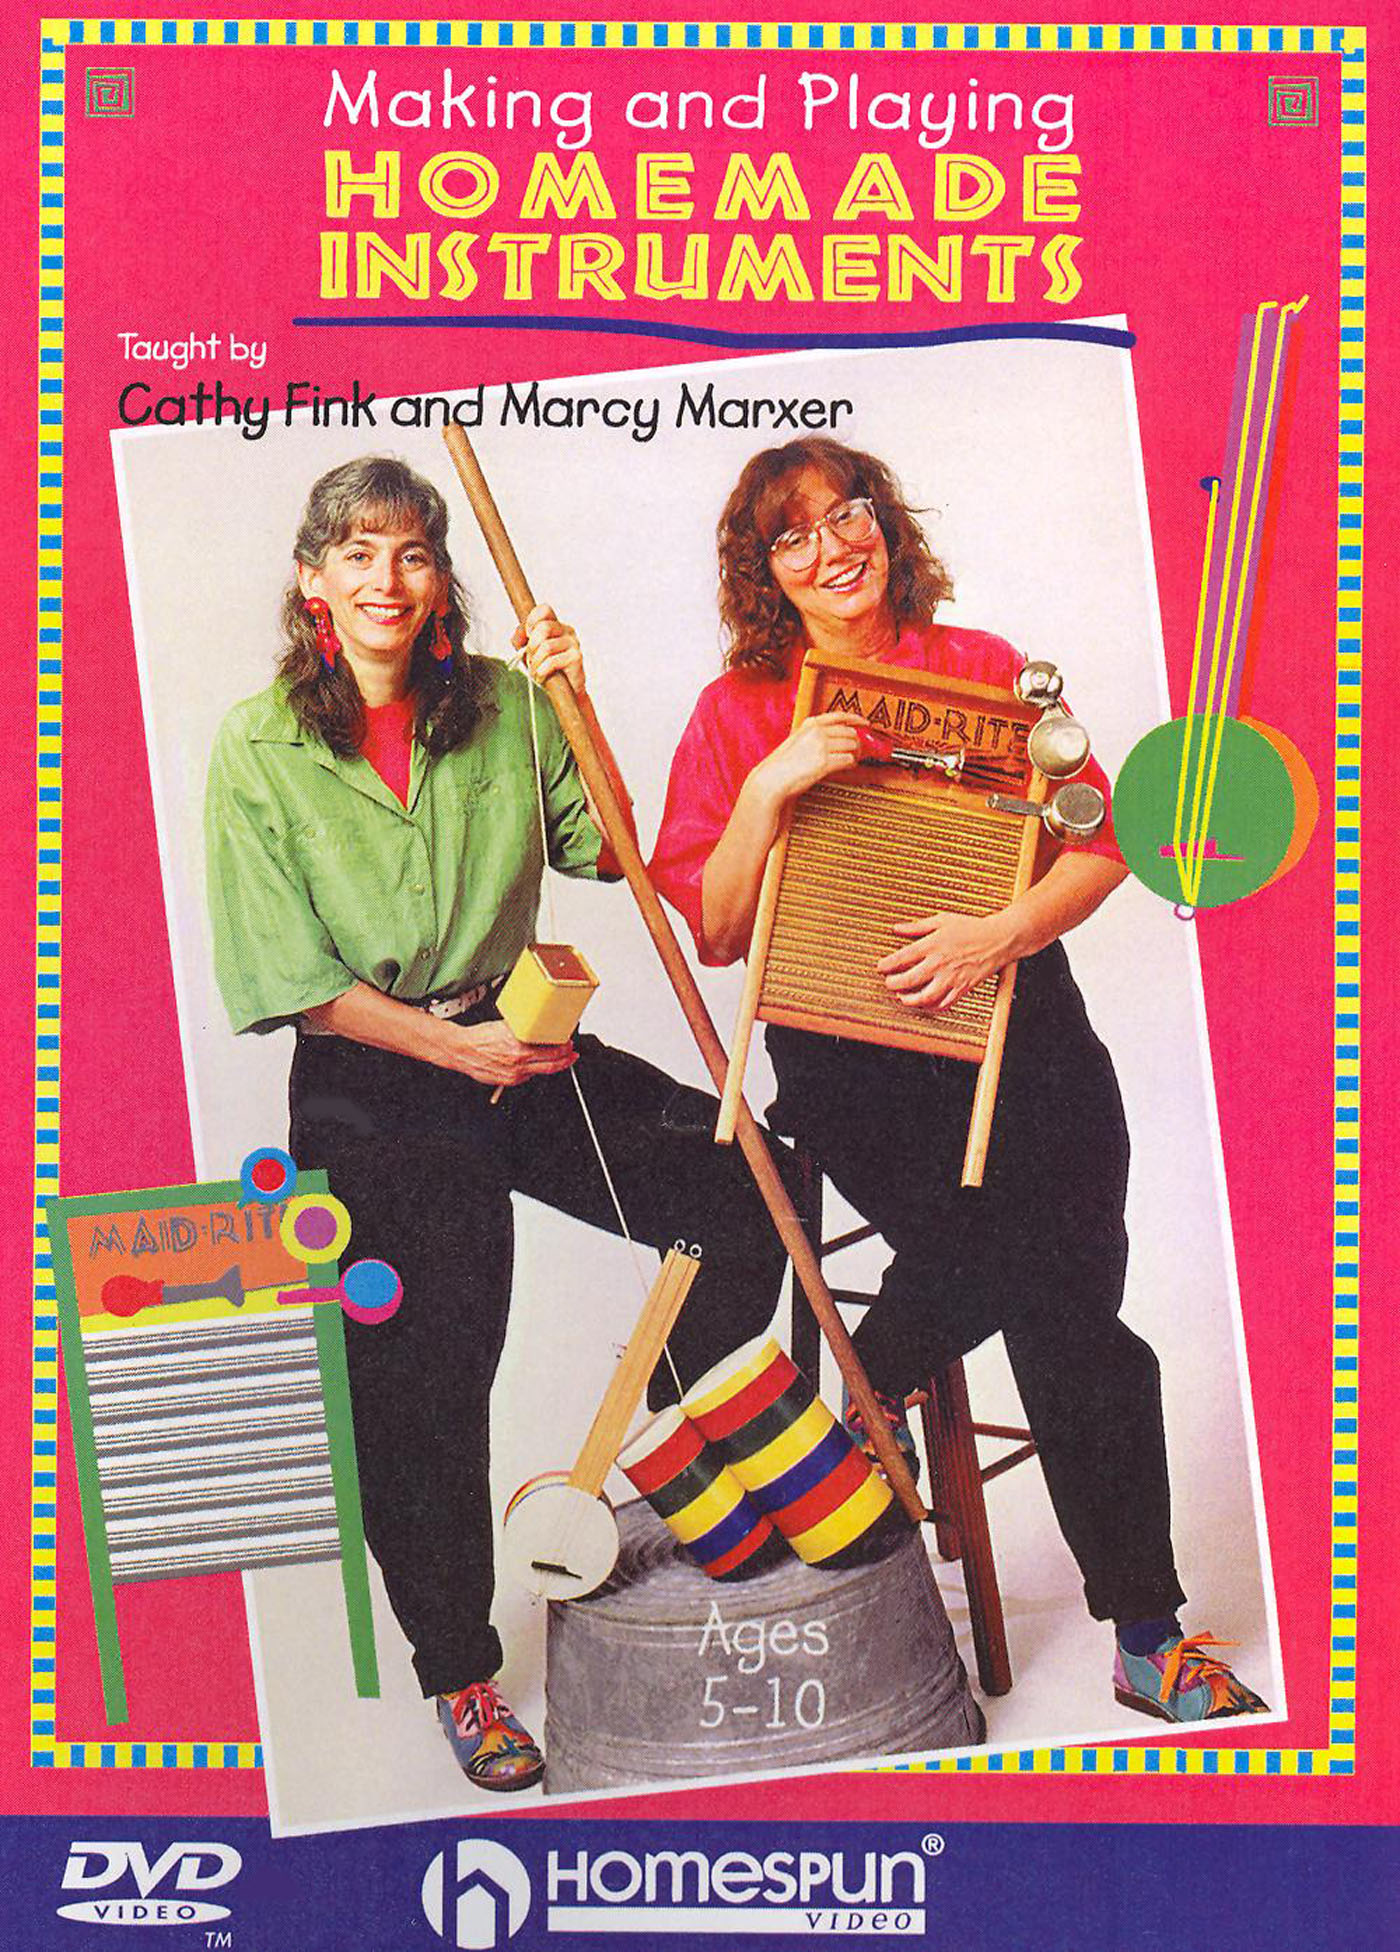 Marcy Marxer/Cathy Fink: Making and Playing Homemade Instruments